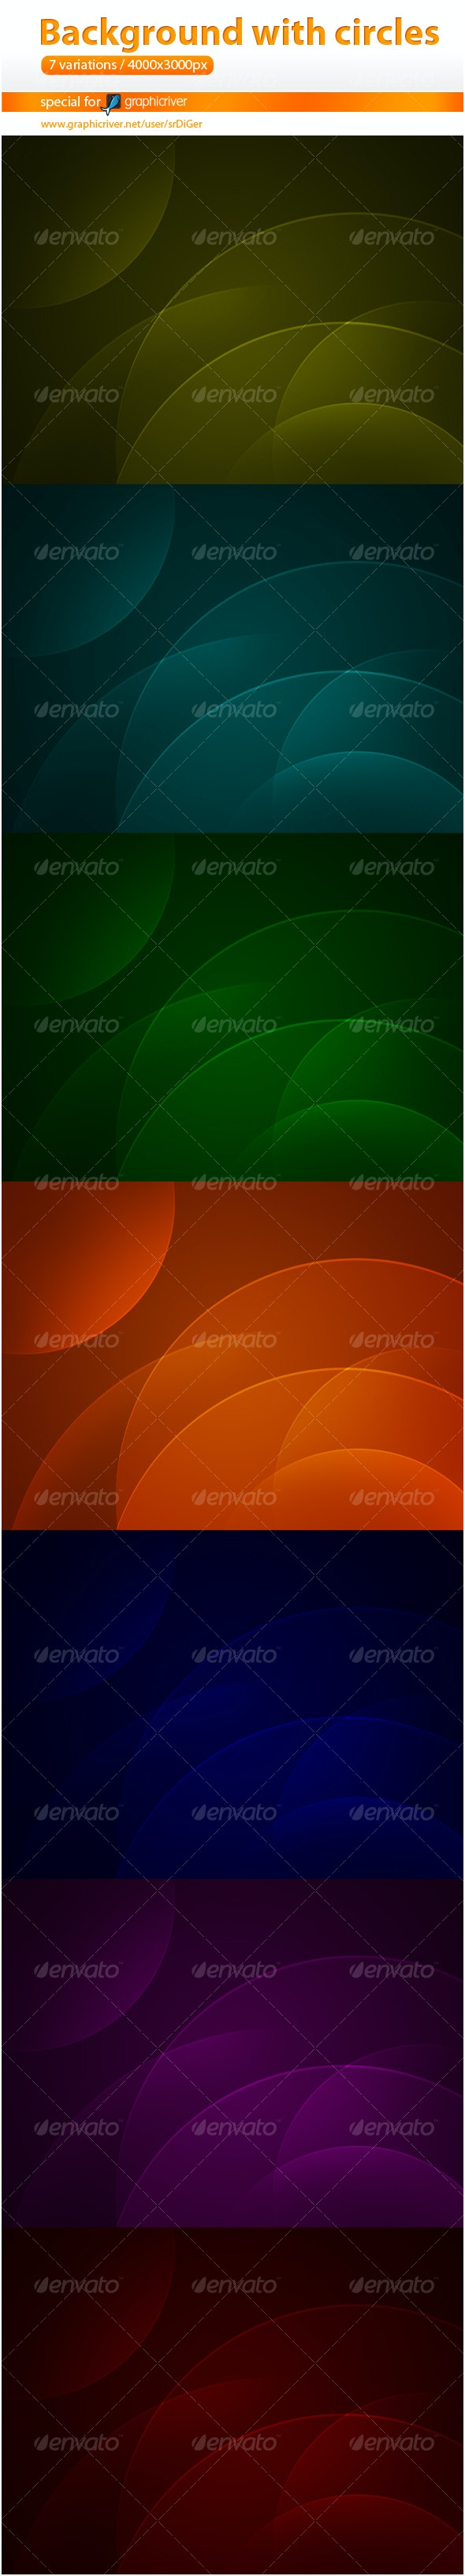 Web 2.0 Background with circles - Backgrounds Graphics